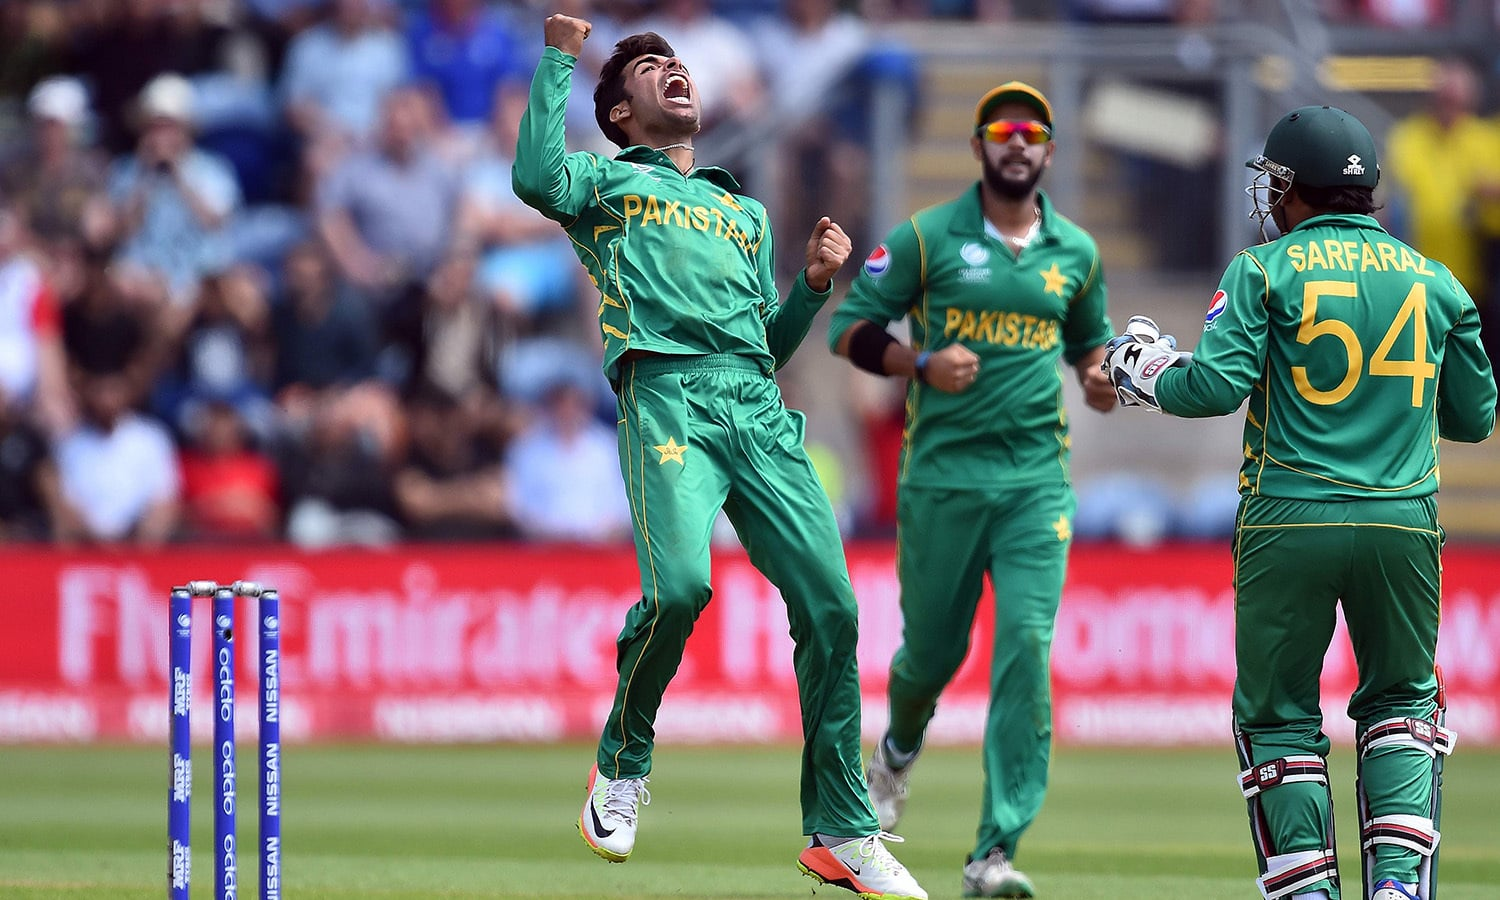 Shadab Khan (L) jumps in jubilation after taking the wicket of Joe Root (unseen) for 46 runs.─AFP